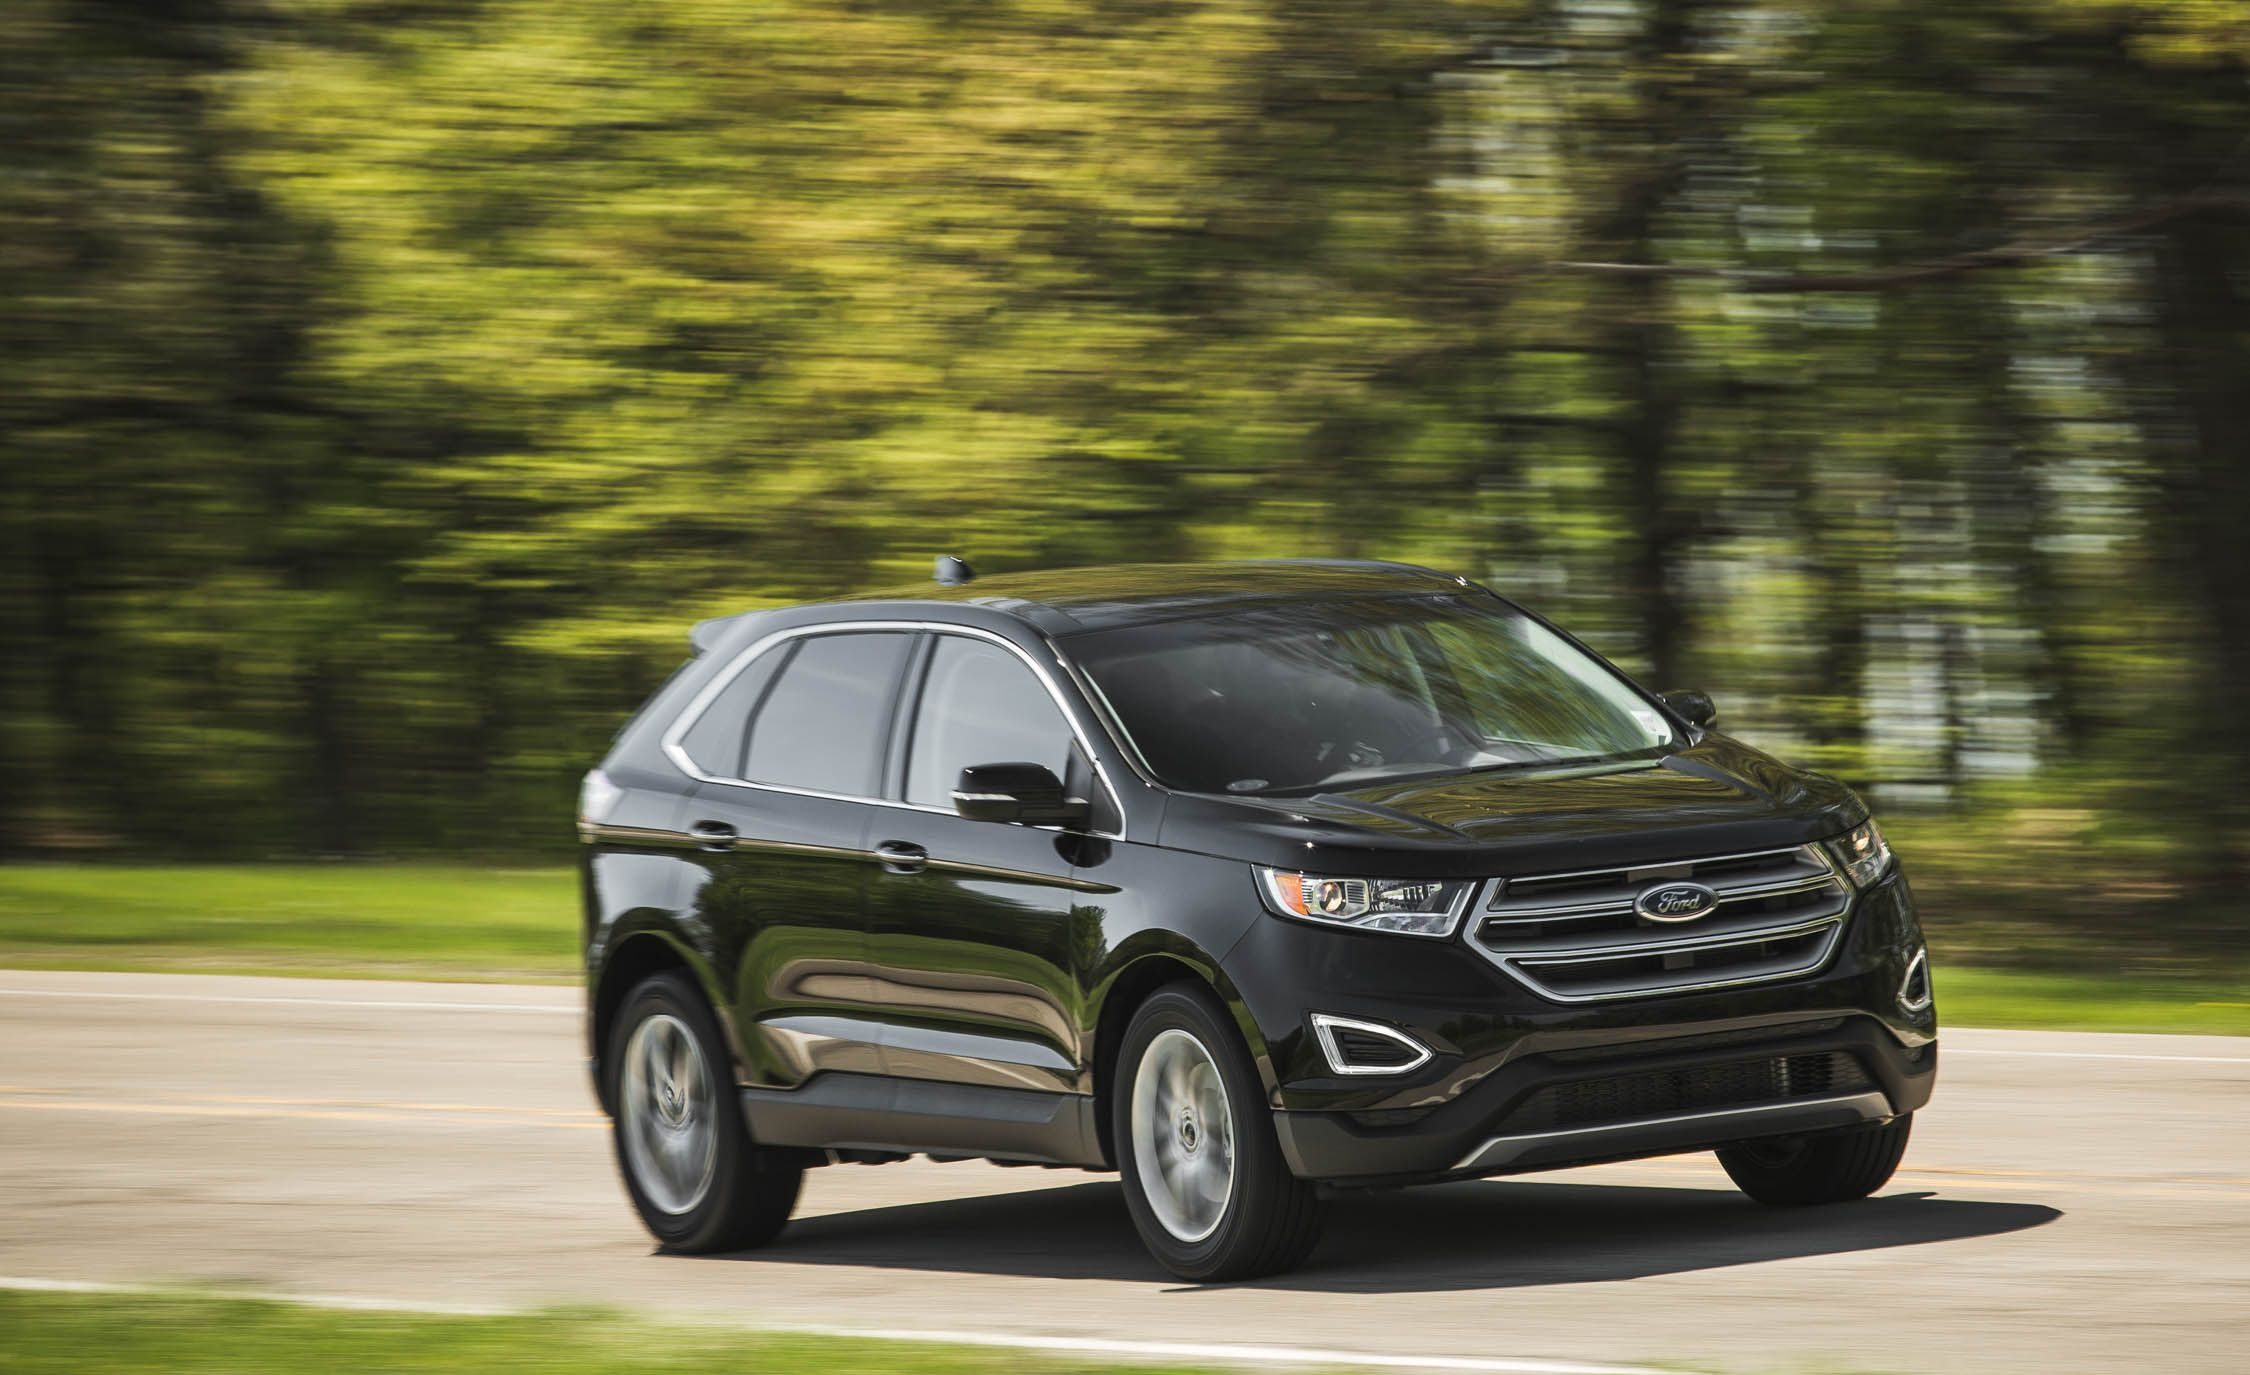 2017 Ford Edge   Performance and Driving Impressions Review   Car and Driver